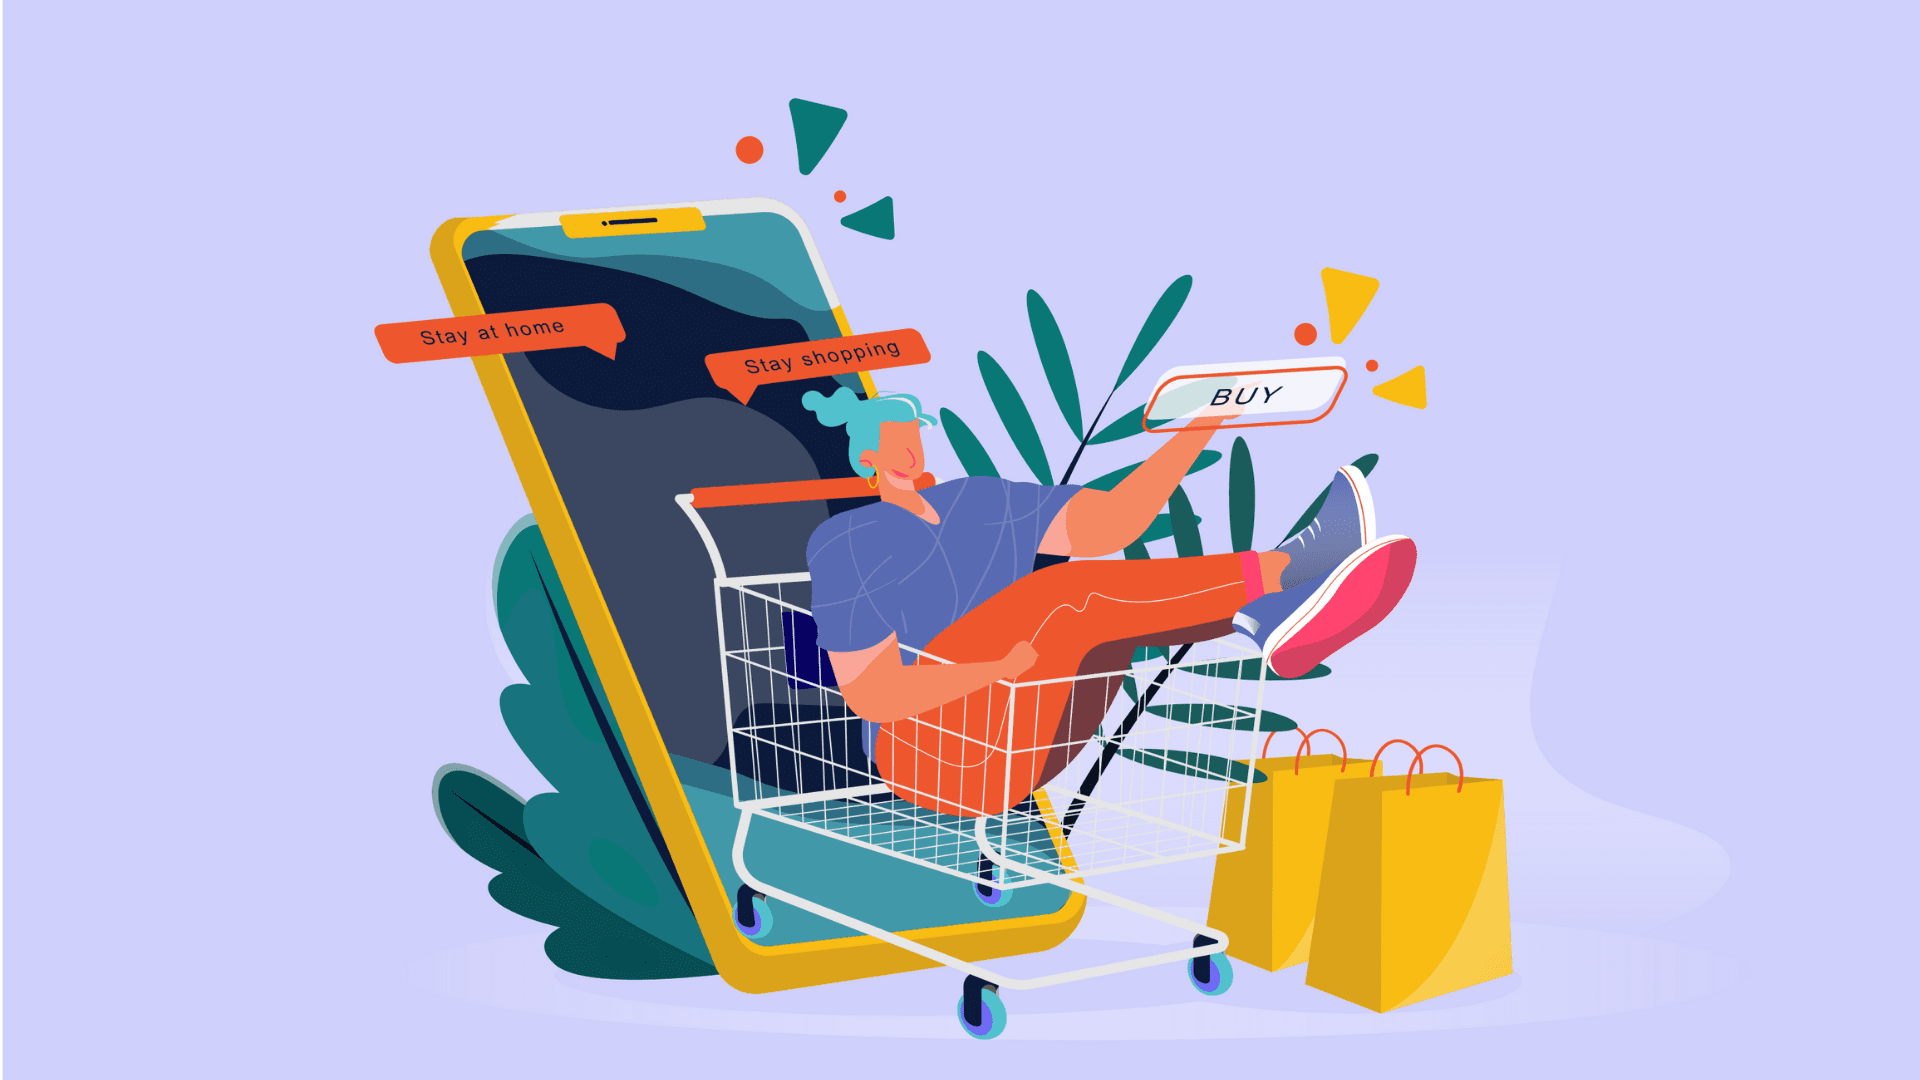 build your shopping app